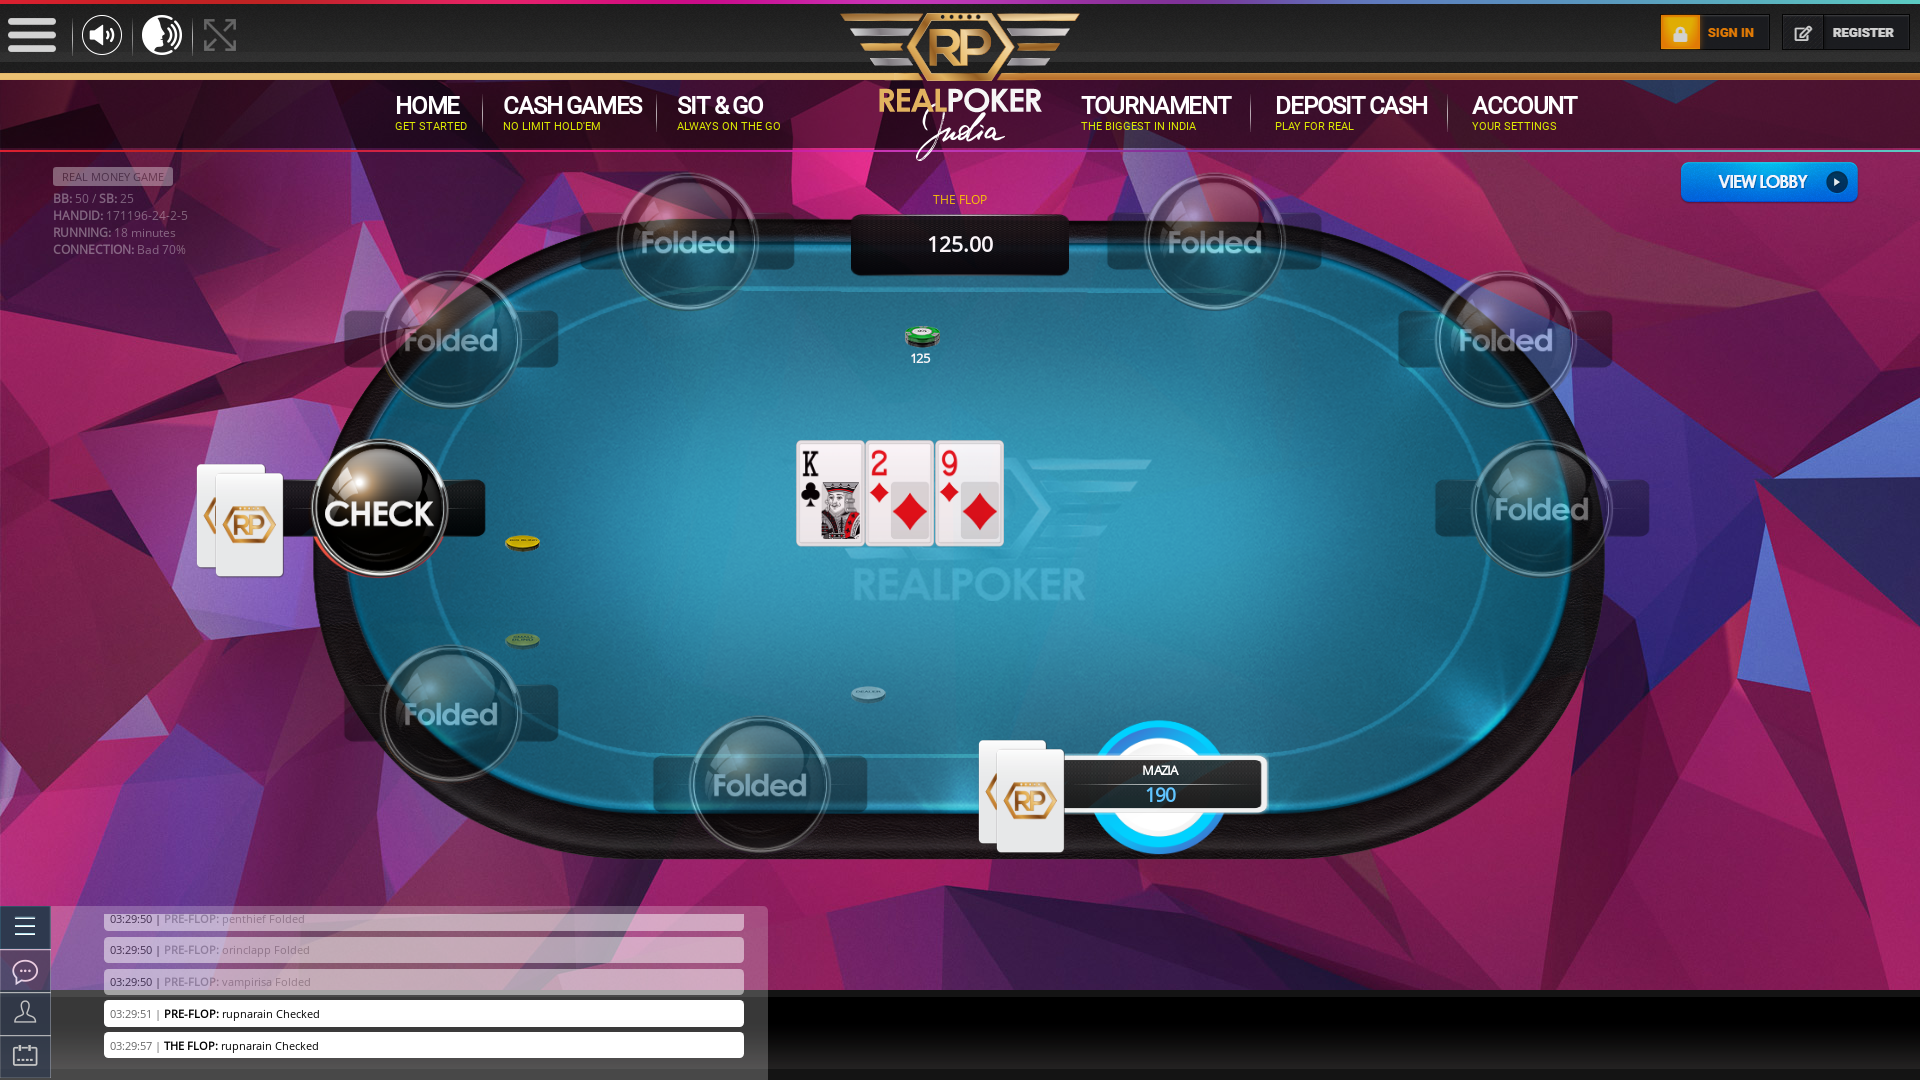 Real Indian poker on a 10 player table in the 18th minute of the game